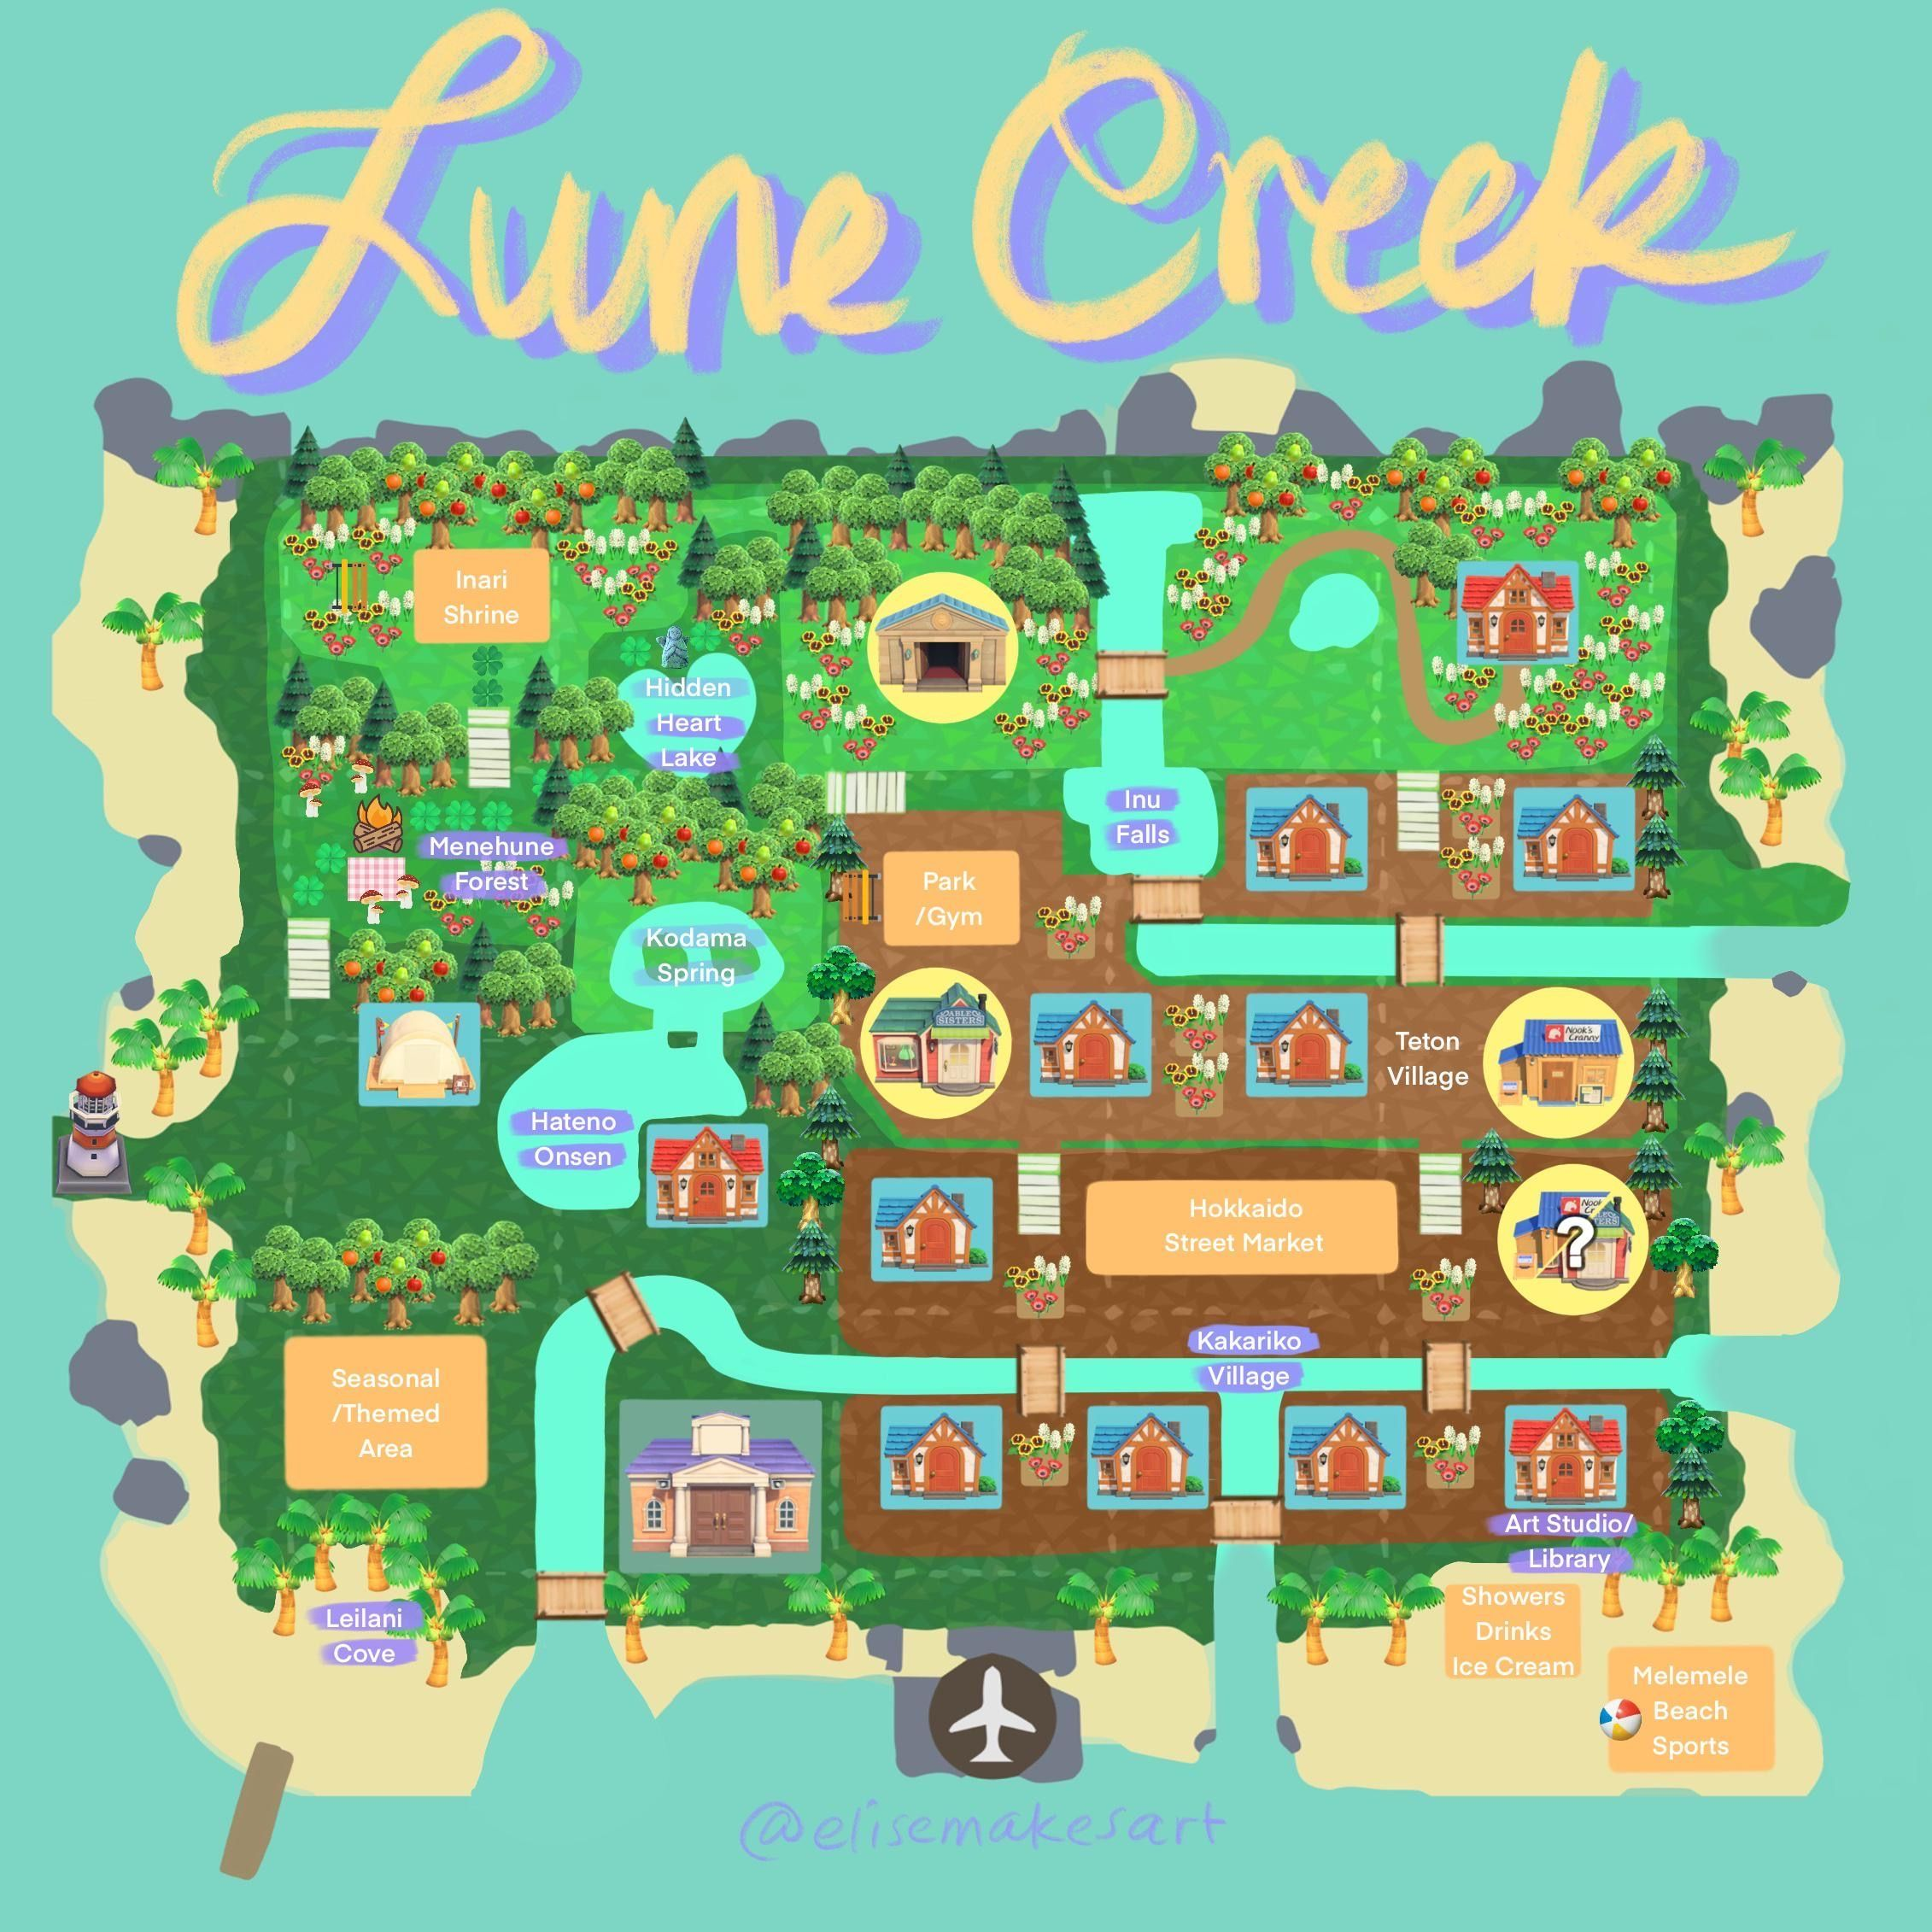 Pin By Emmanuelle Delattre On Map Animal Crossing In 2020 Animal Crossing Game New Animal Crossing Animal Crossing